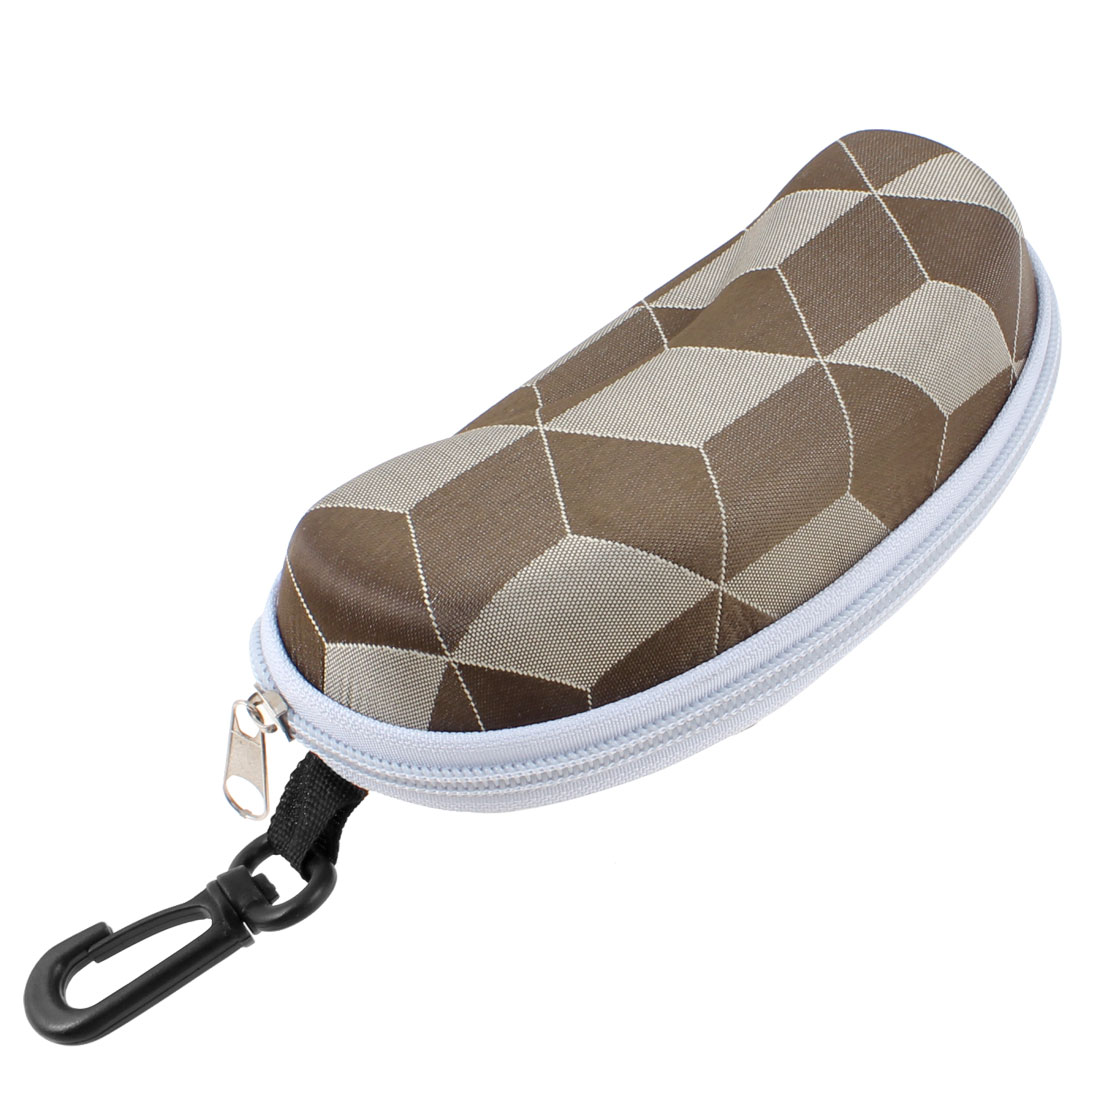 Grid Pattern Zip Up Sunglasses Eyeglasses Case Holder Chocolate w Hook